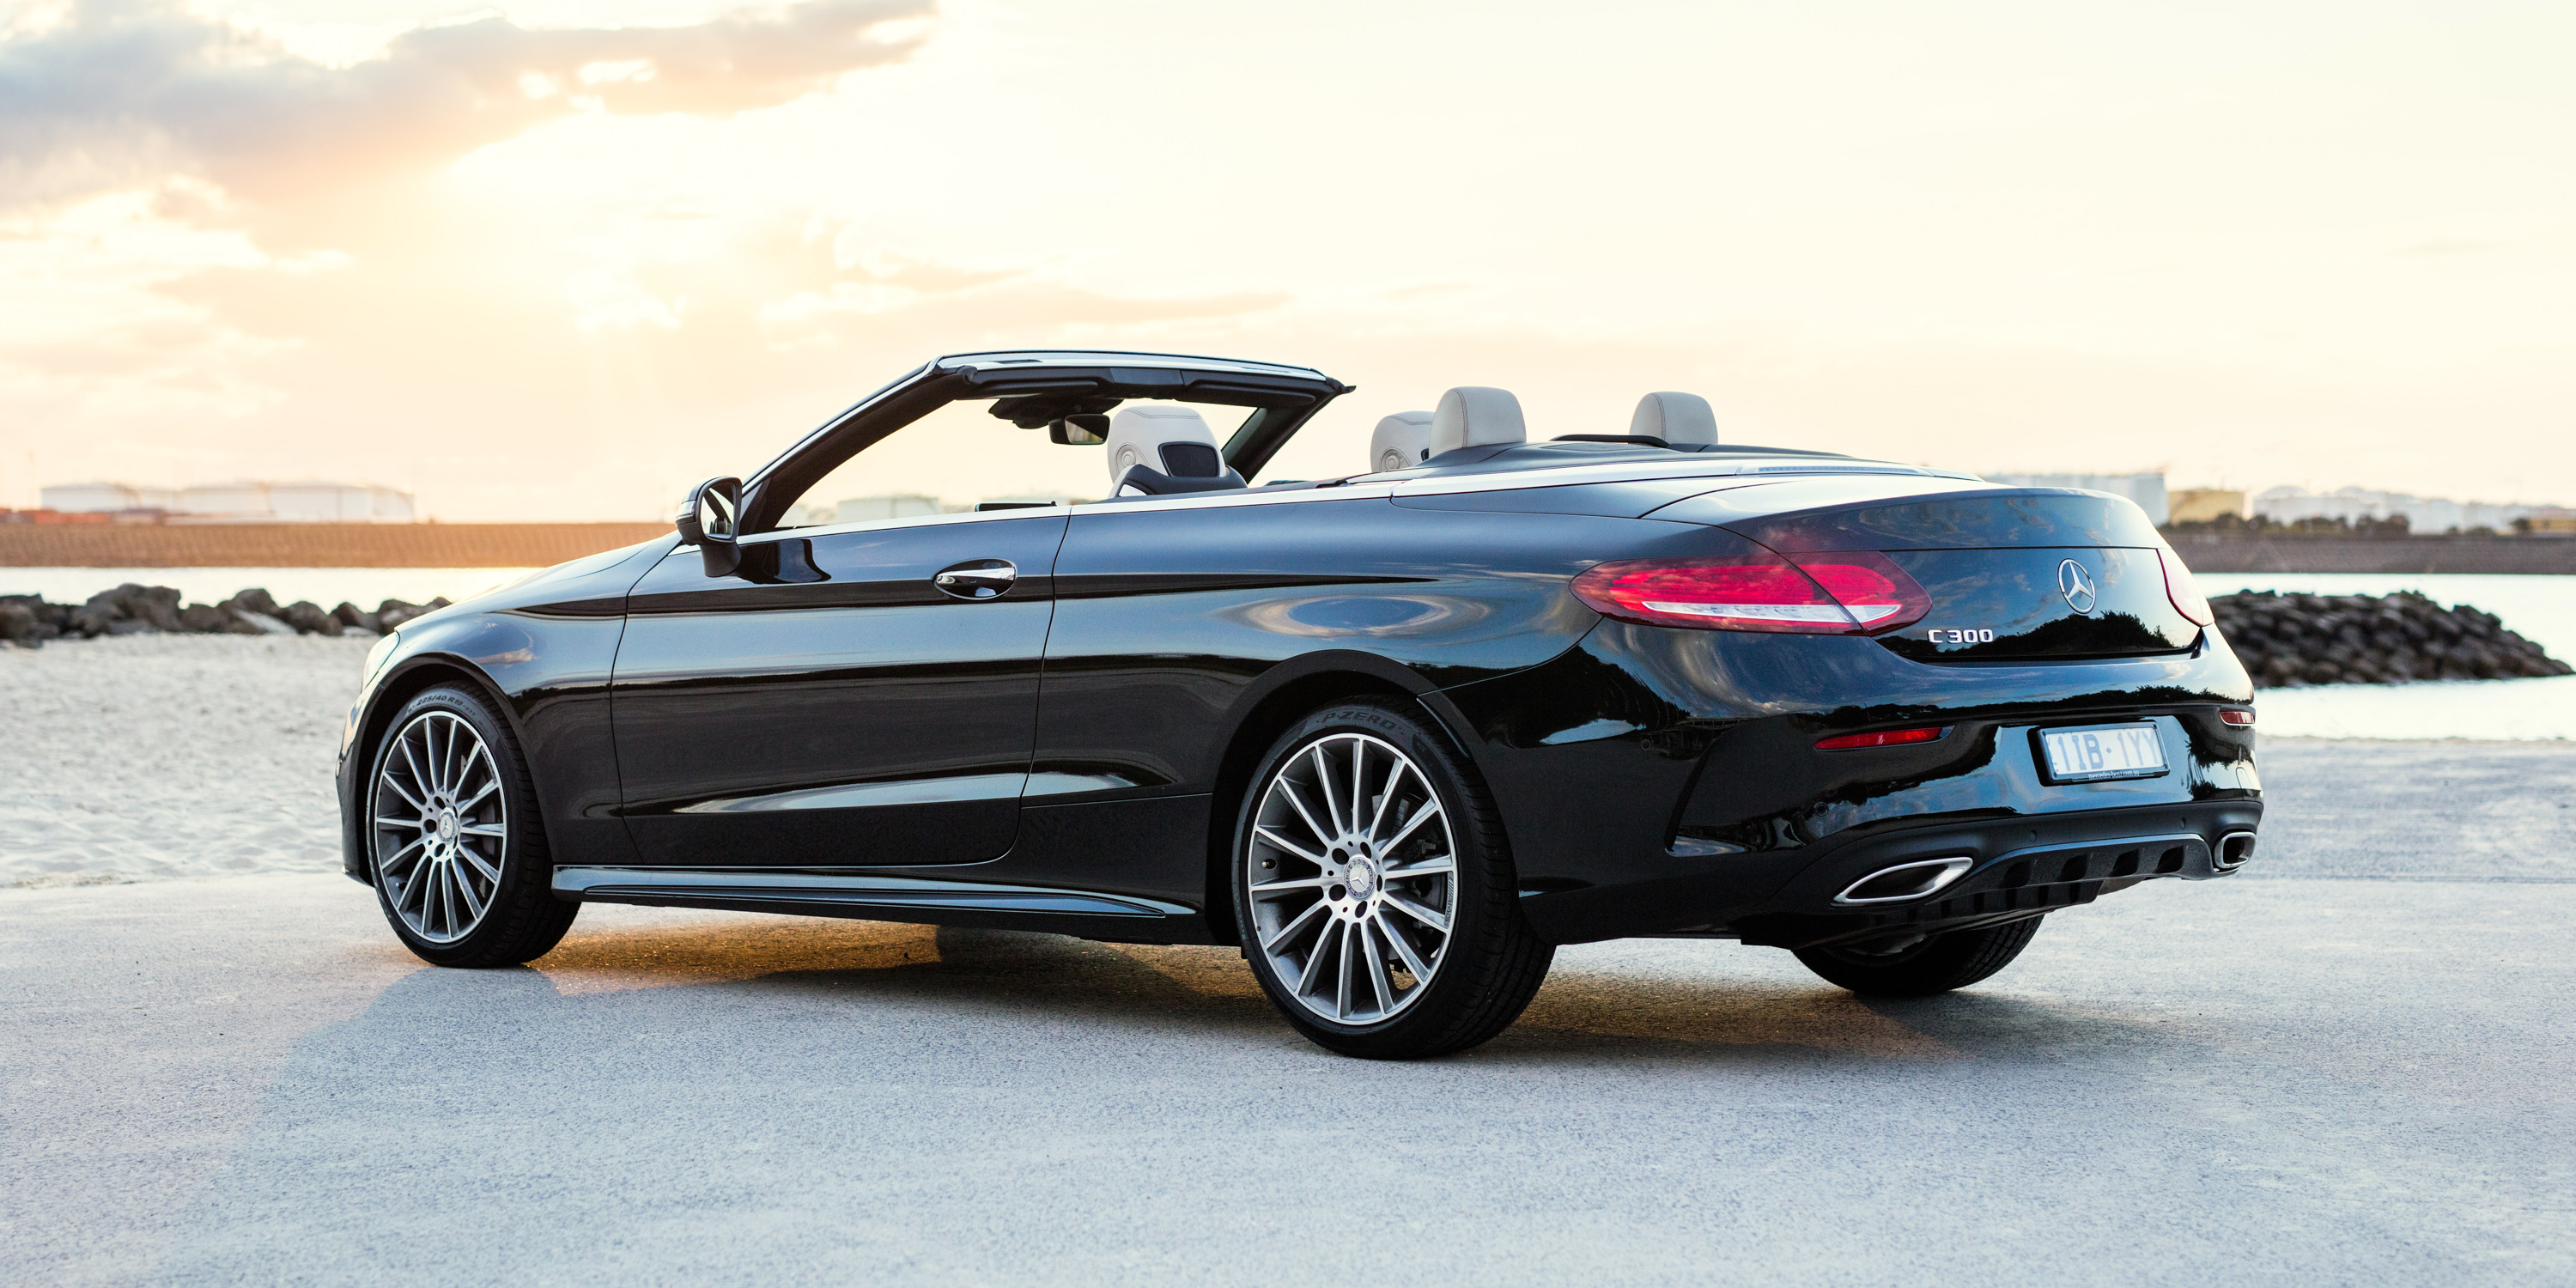 2017 mercedes benz c class cabriolet review photos for Benz mercedes c class